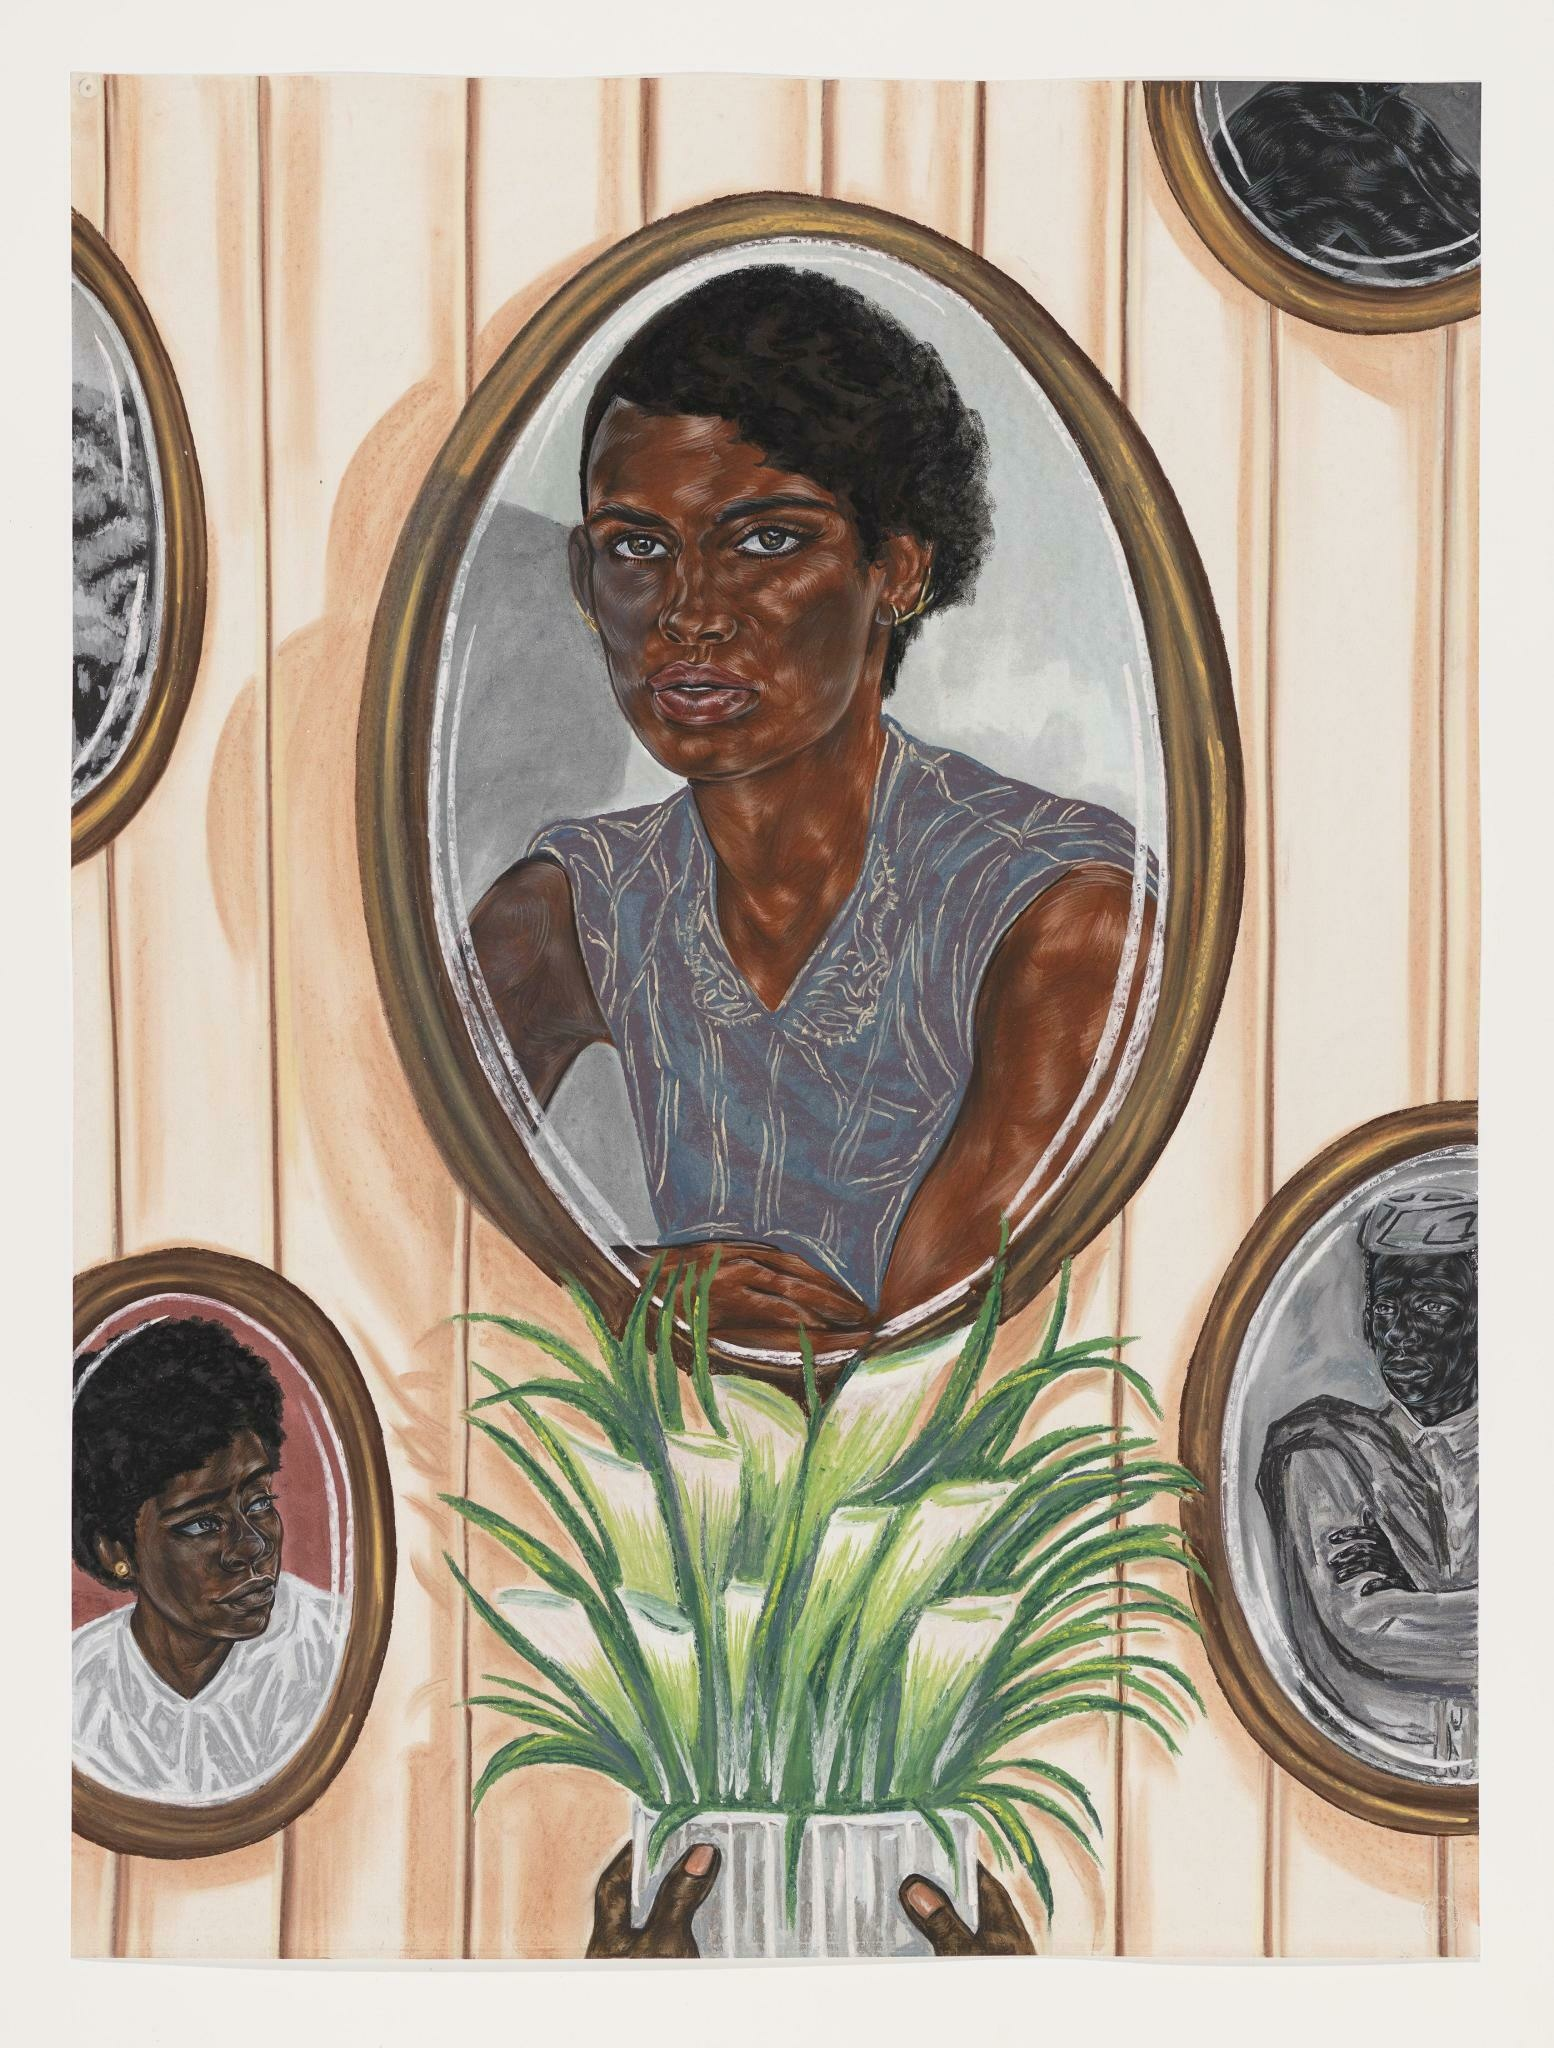 A wall with a portrait of a Black woman, with additional portraits and hands holding a vase of lillies surrounding her.